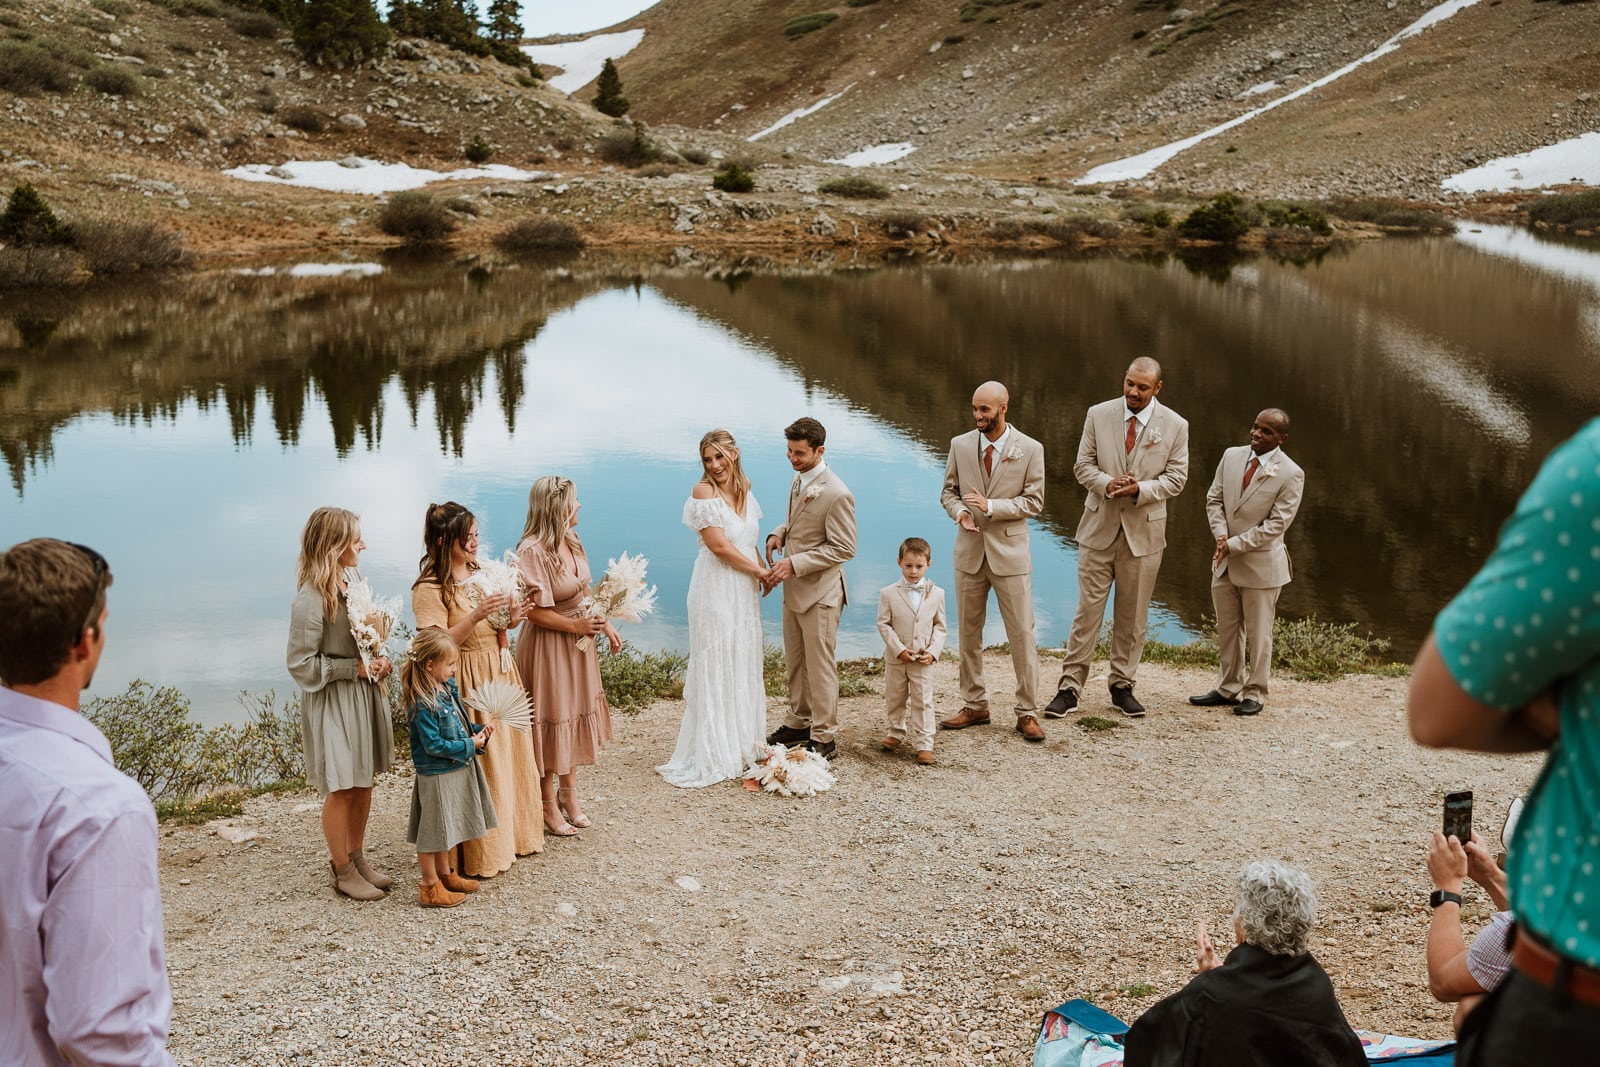 Bride and groom share their vows at Loveland Pass lakes with their bridal party around them for their Colorado elopement. Loveland Pass is one of the best places to elope in Colorado simply for the views and year around access!